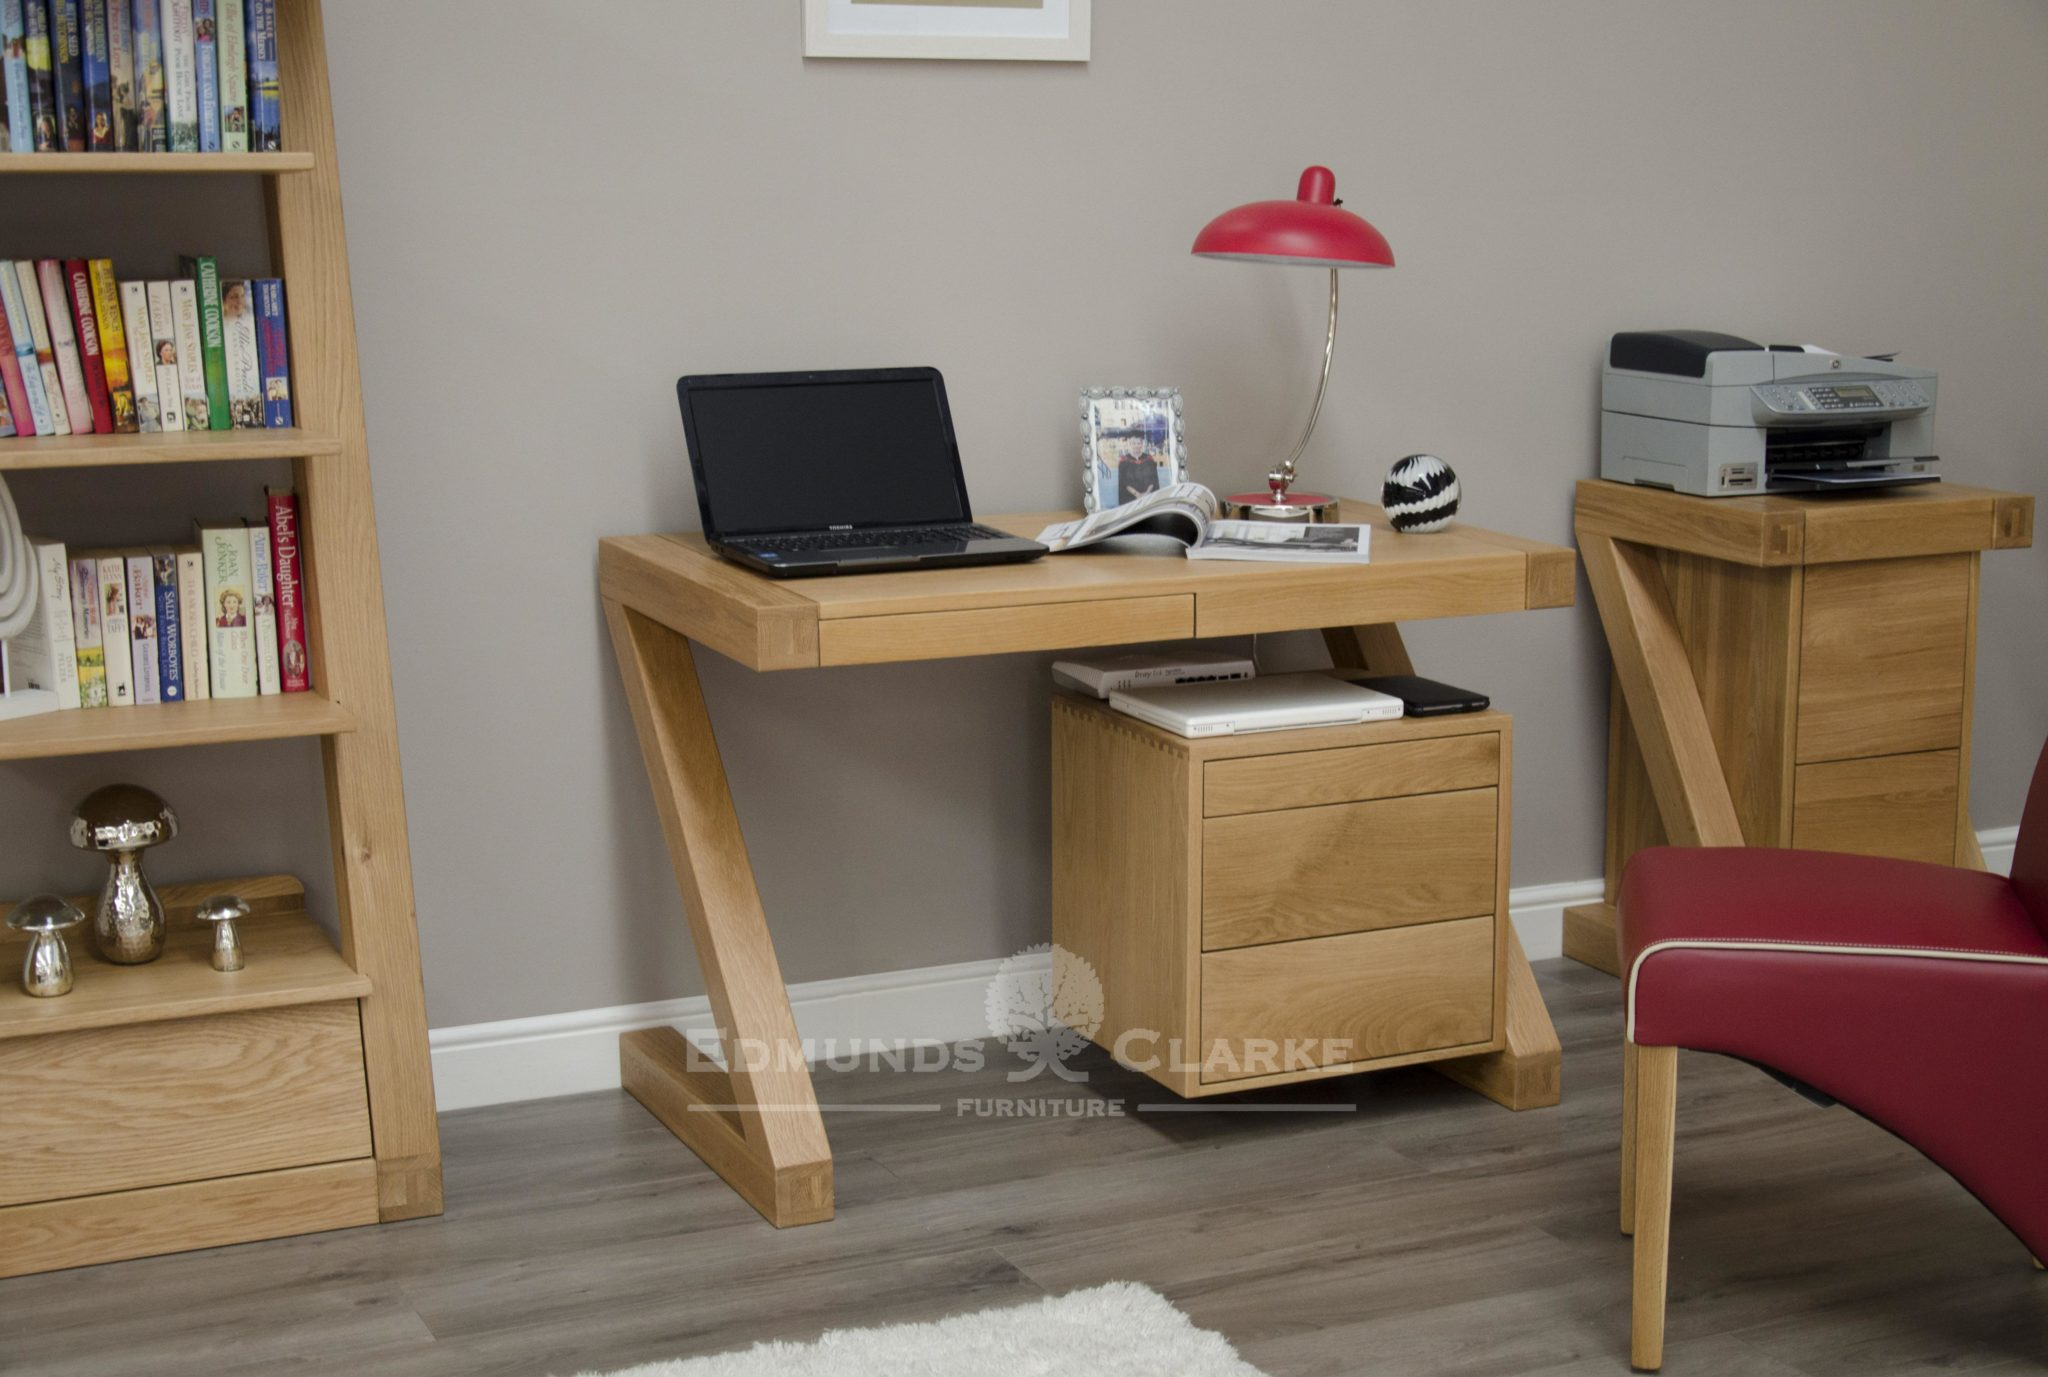 Z Designer Solid Oak Small Computer Desk Edmunds And Clarke Furniture